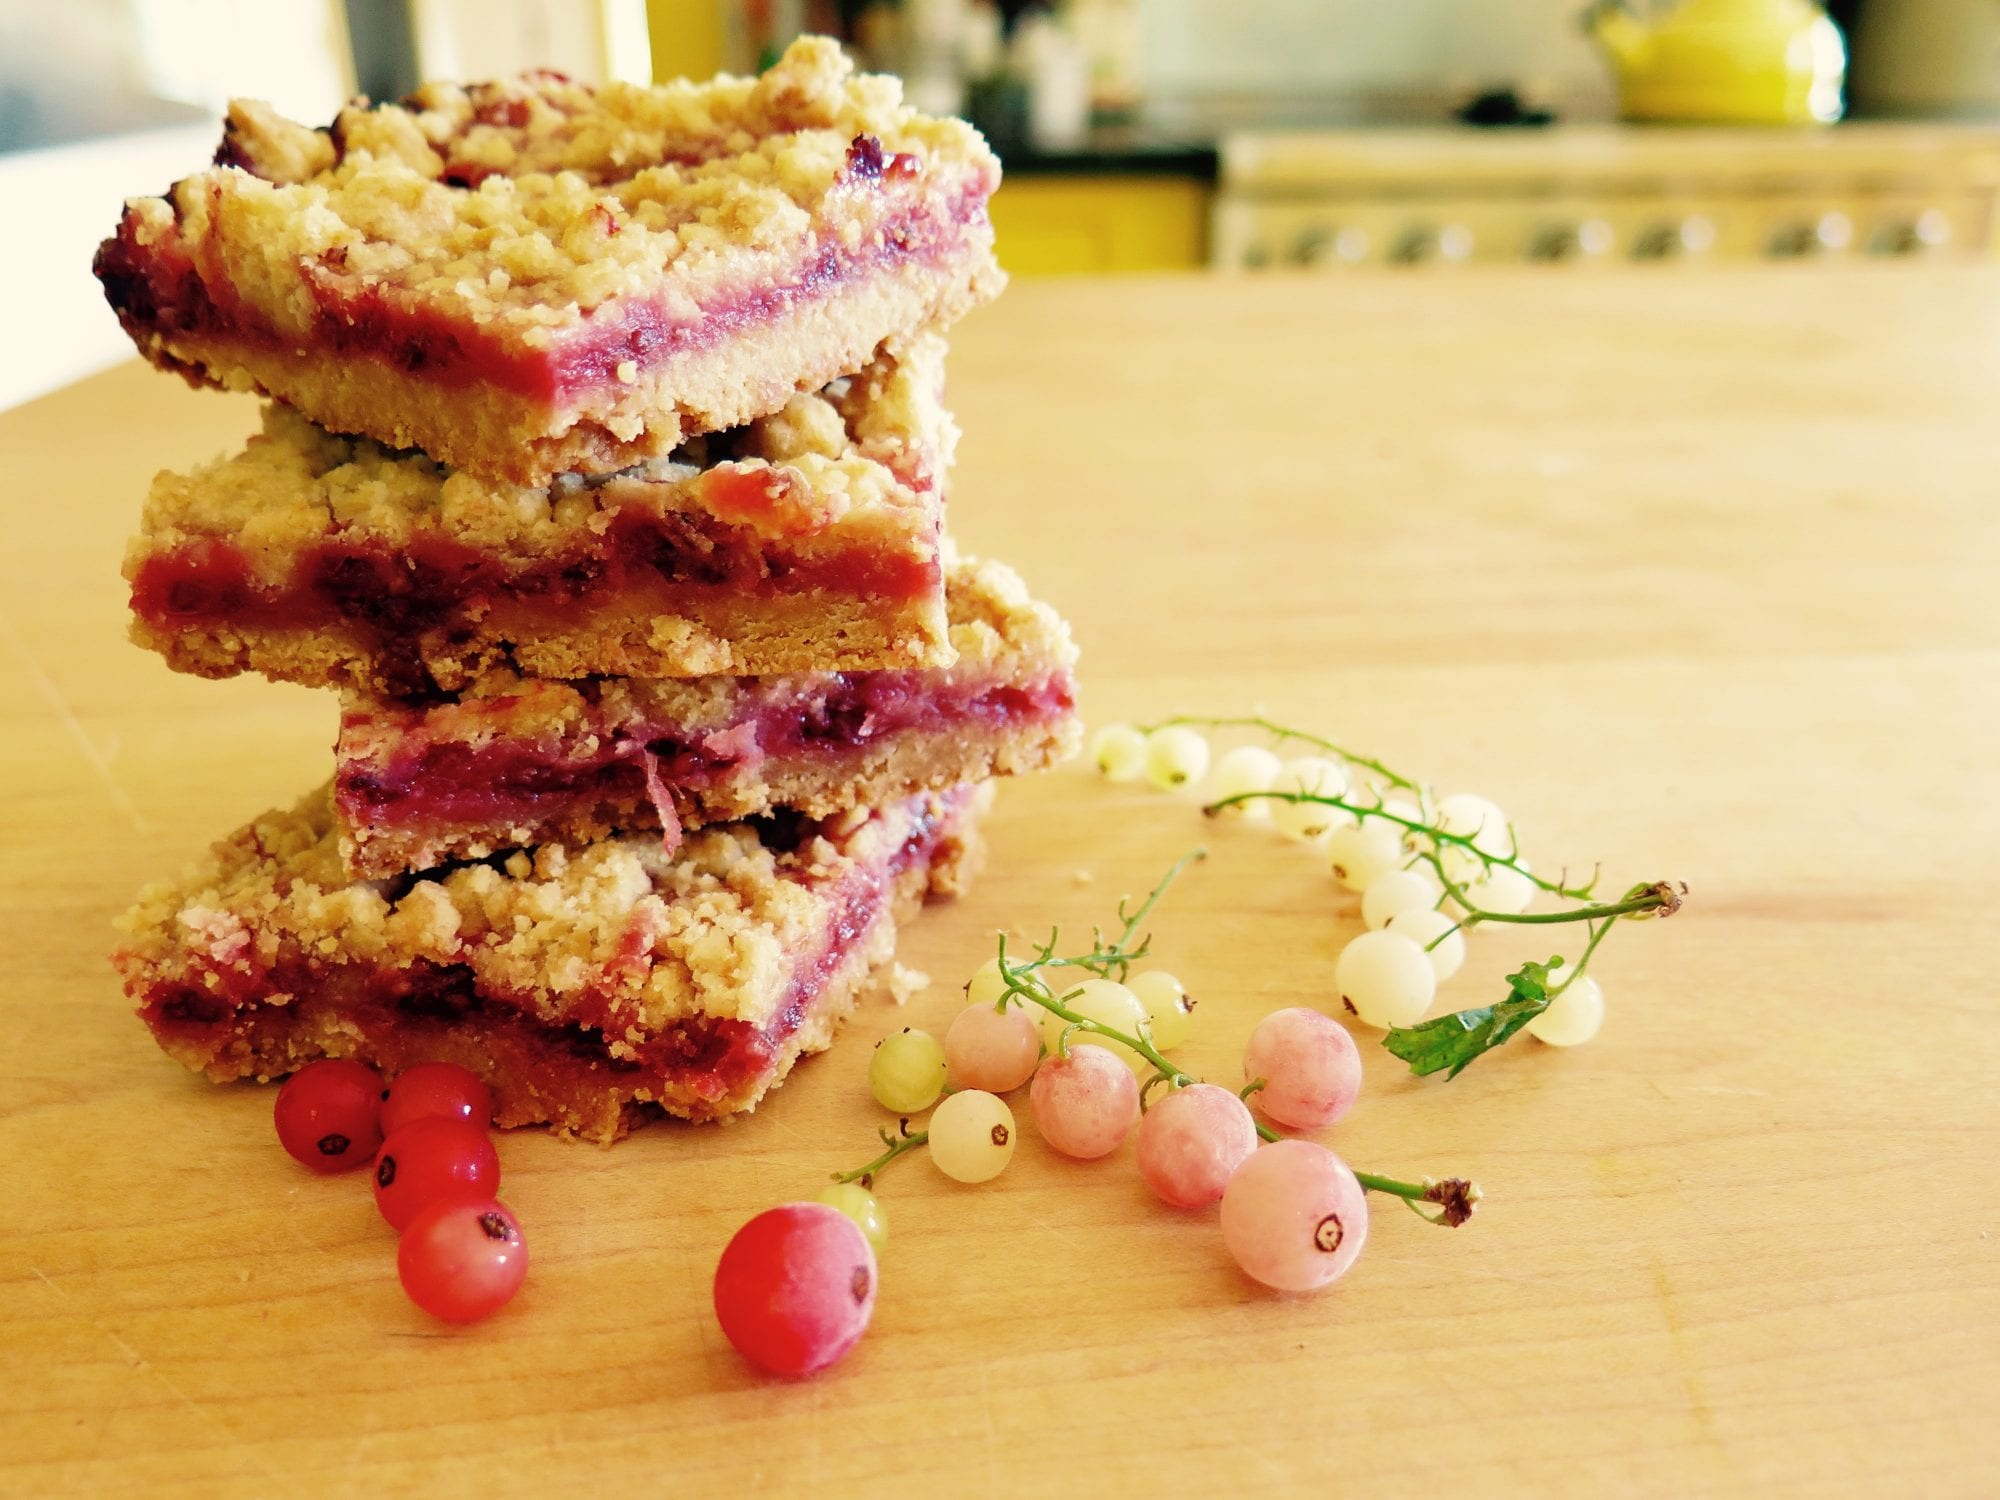 currant-filled crumb-topped shortbread bars